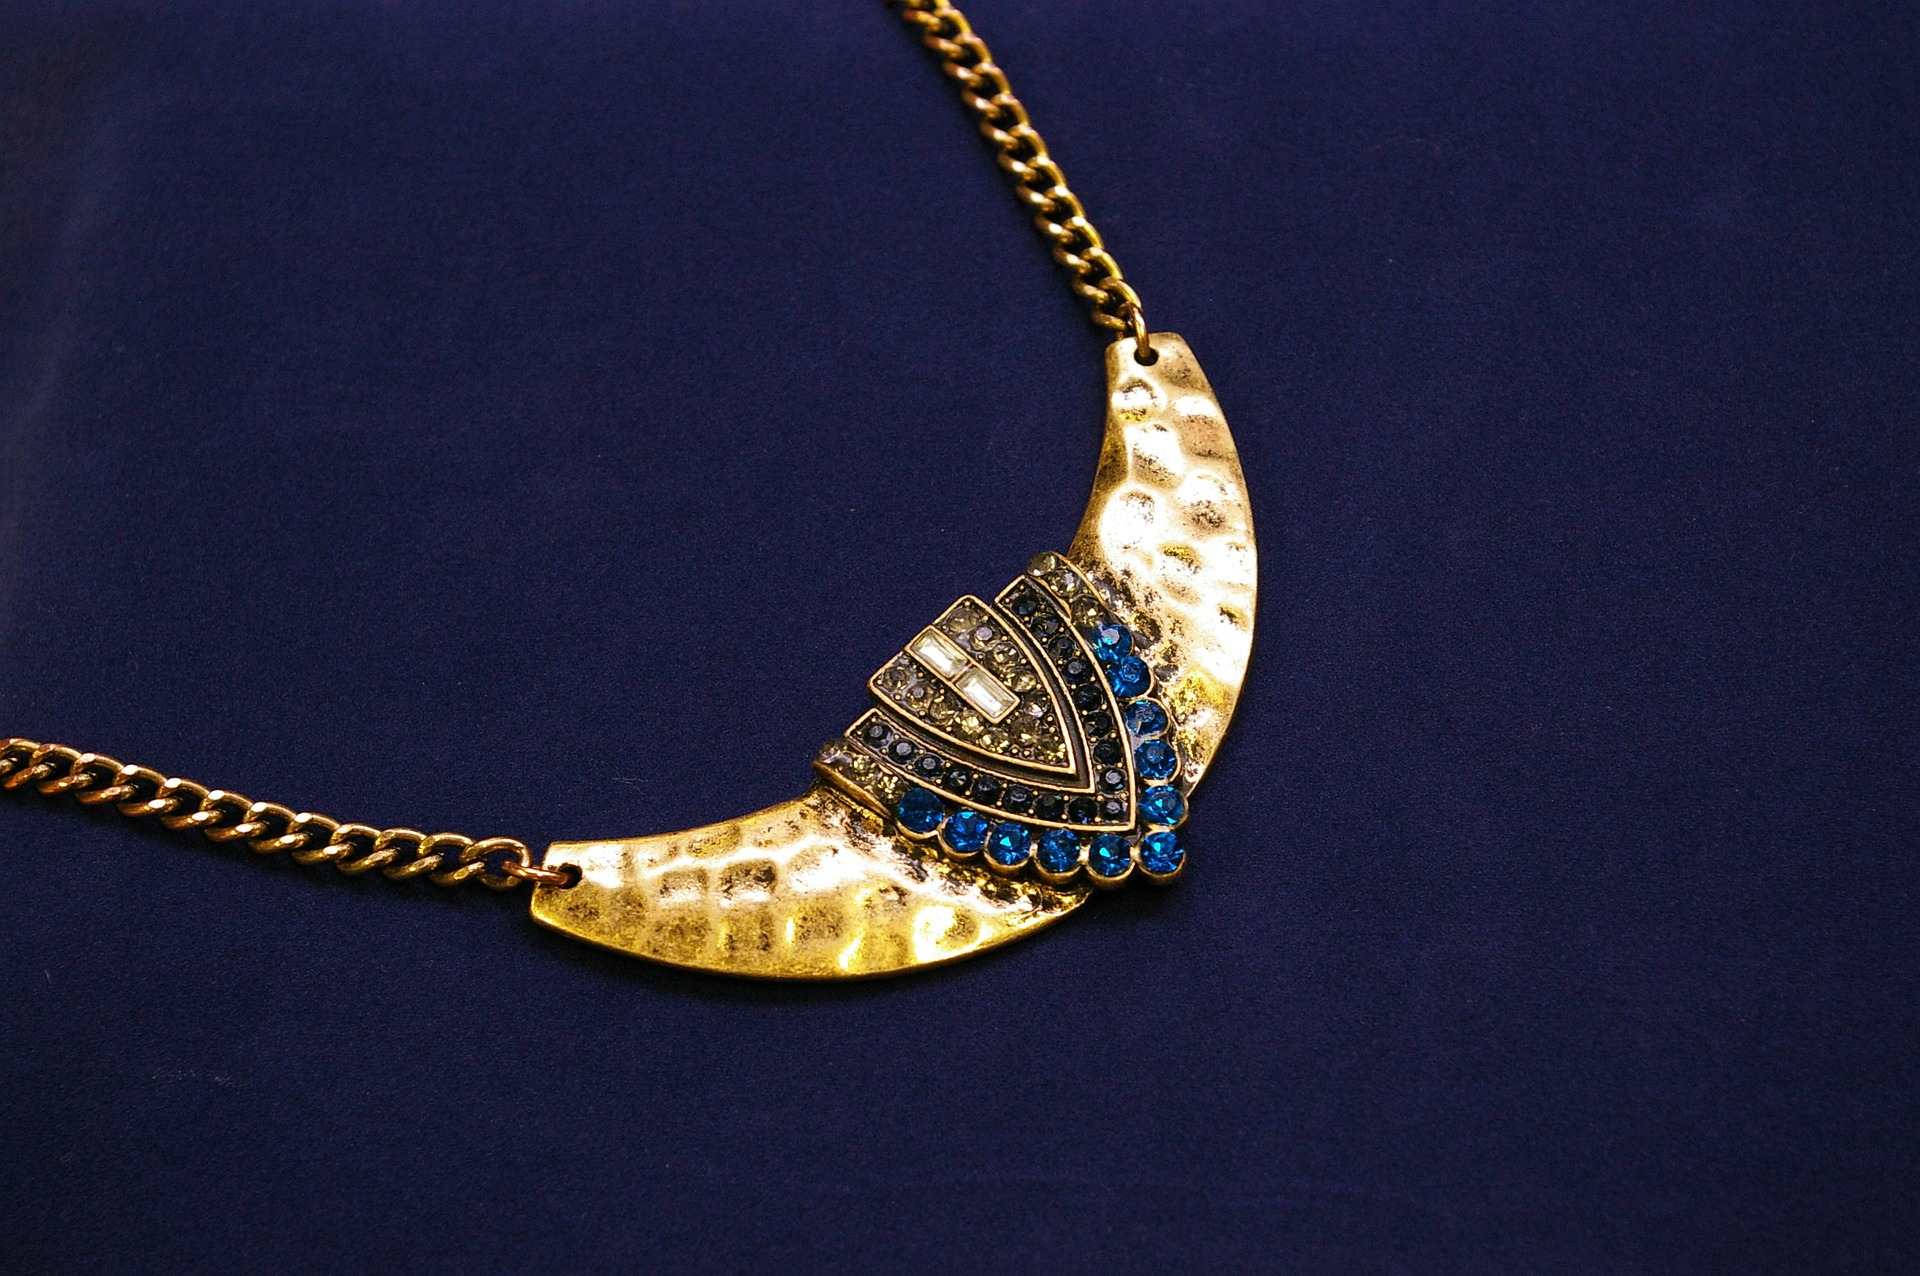 Jewellery Designing Tips: How to Increase the Value of Old ...